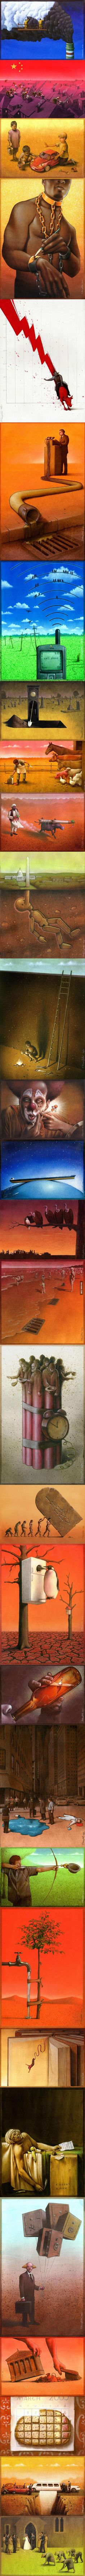 30 Satirical images created by Pawel Kuczynski. Like the one where they are painting the dark cloud of pollution white? #WOW http://9gag.com/gag/aNeX1d6?ref=t via @9GAG